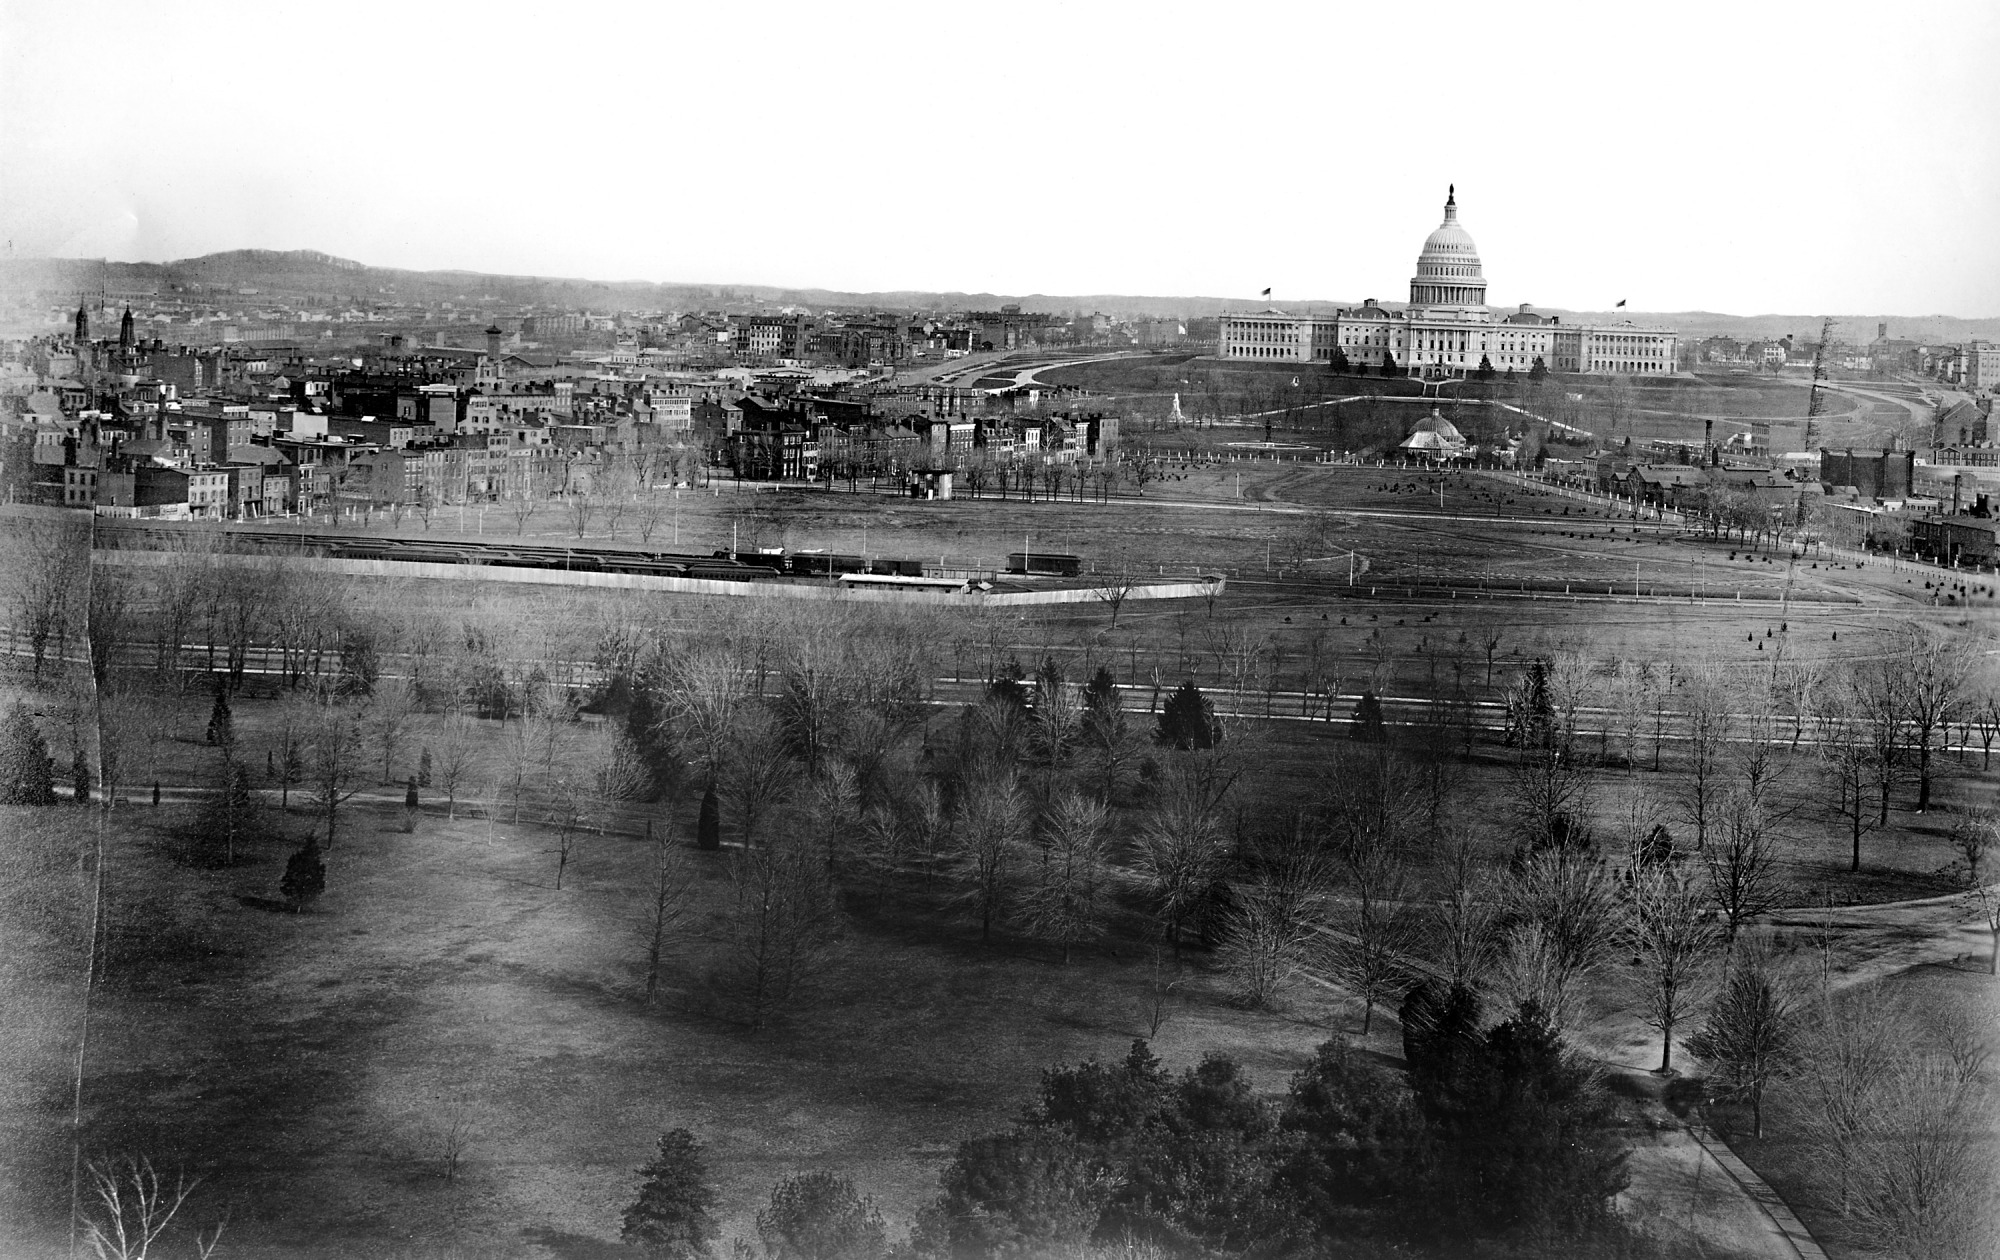 Panoramic View of Washington, D.C. - Looking Toward West Side of U.S. Capitol